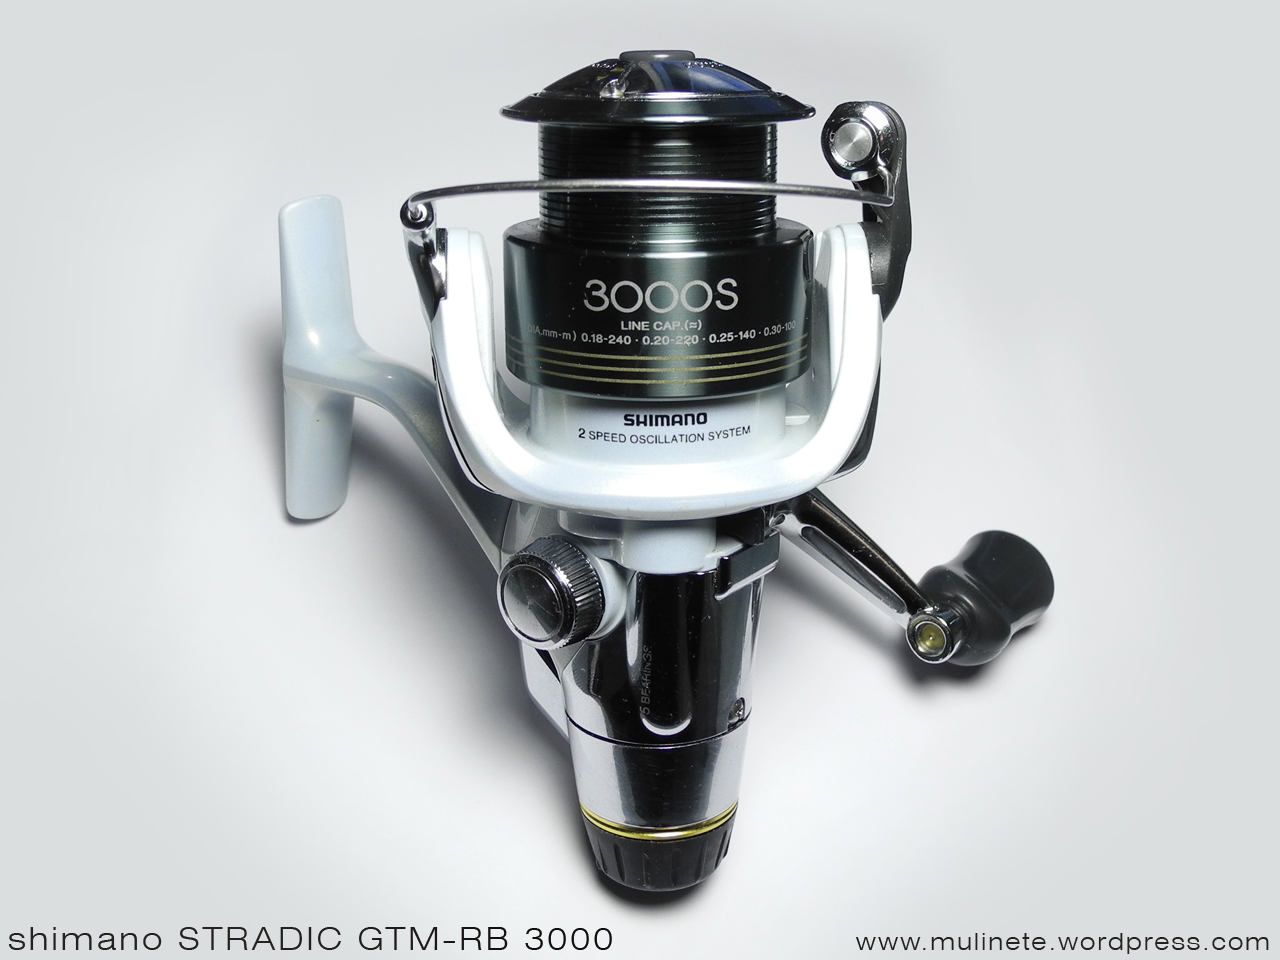 shimano stradic gtm 3000 reviews